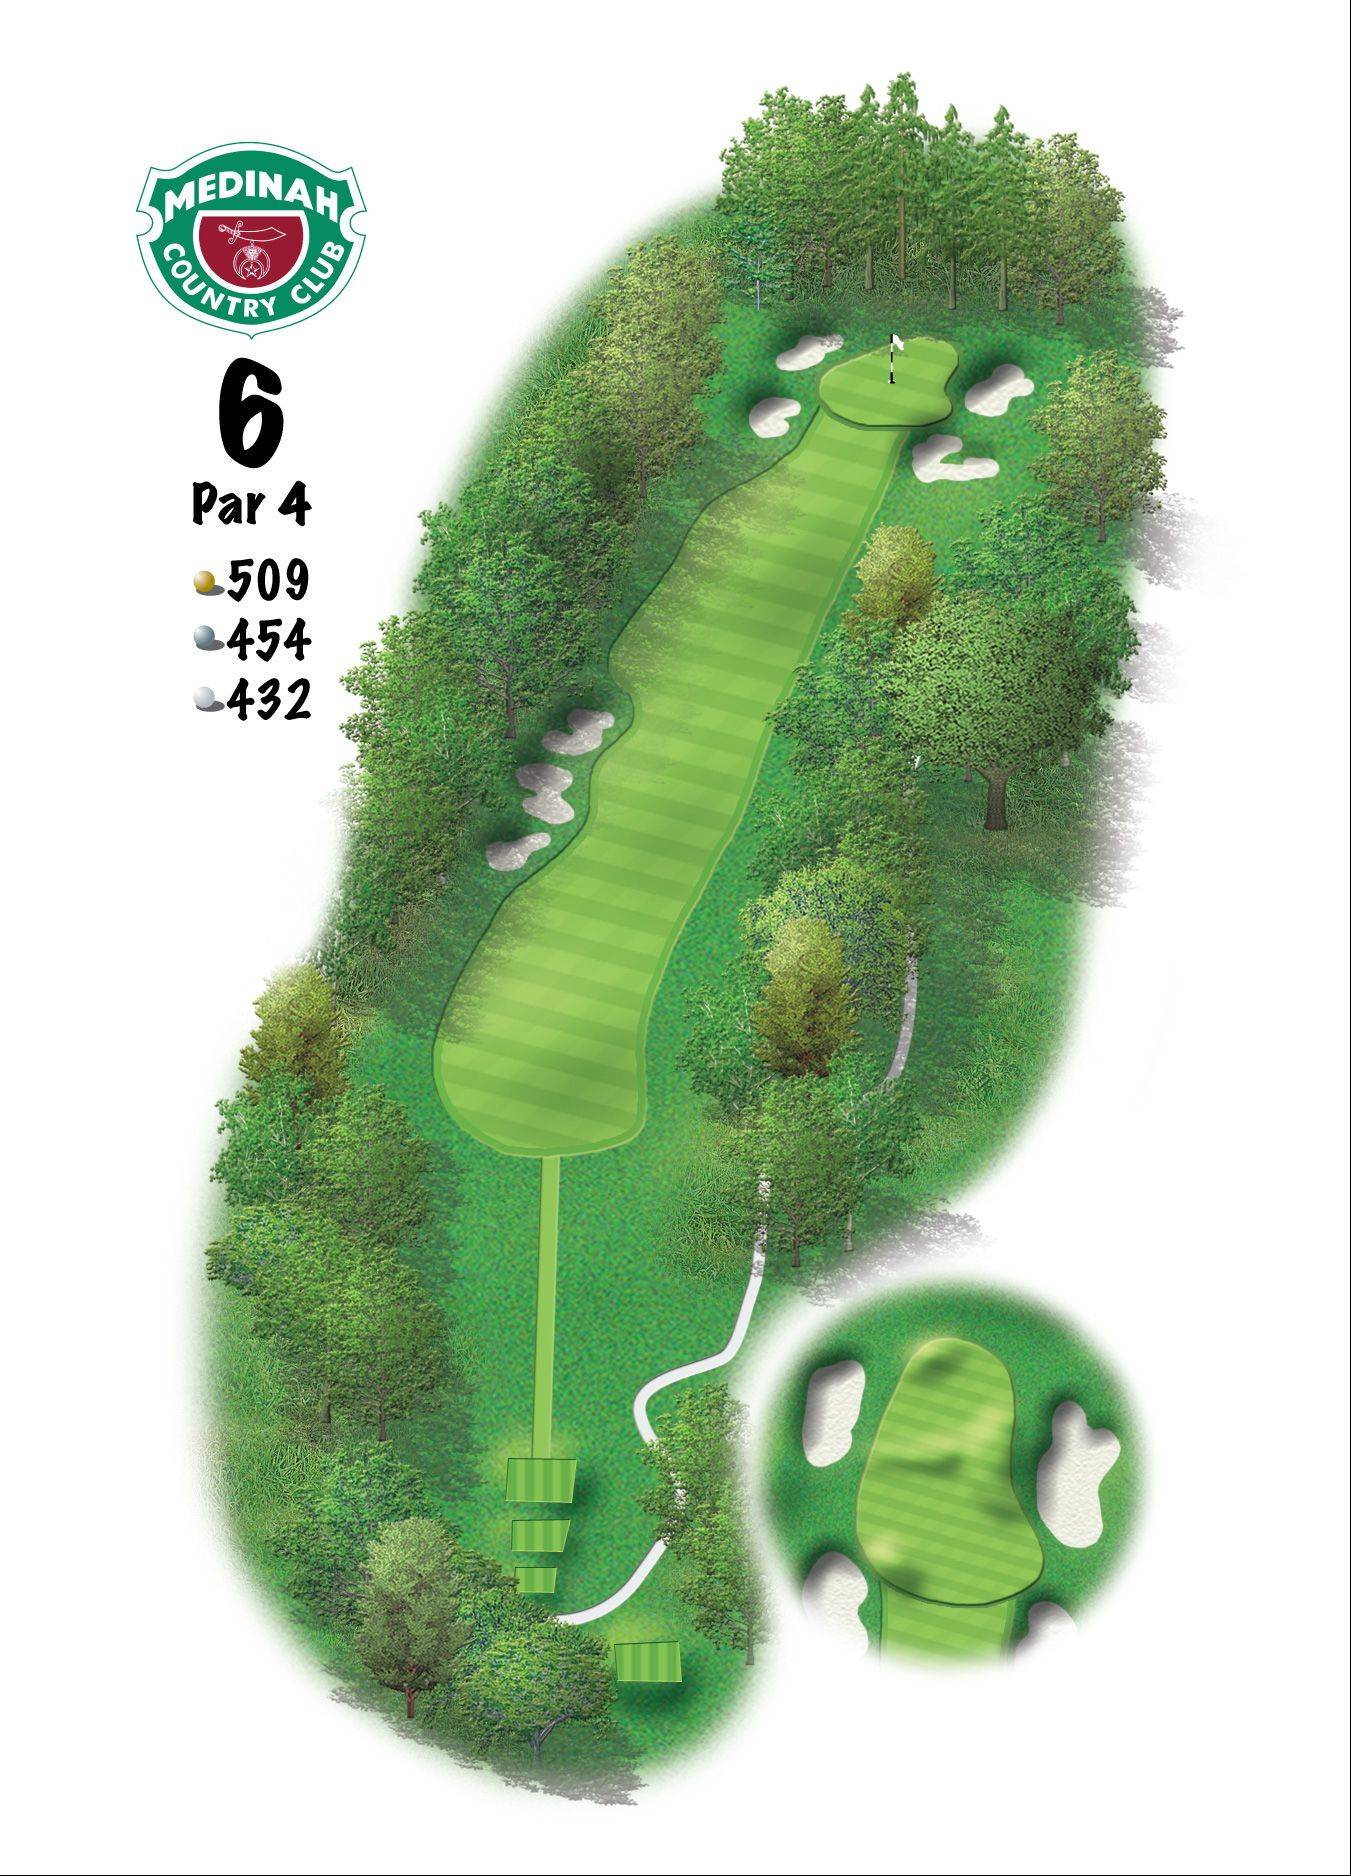 Hole 6 of the Ryder Cup course at Medinah. 509 yards/465 meters, Par-4 This is one of Medinah's truly great par-4's. With the addition of a new back tee, the length requires a driver shaping from left-to-right off the three fairway bunkers. Left side of the fairway will still leave most a mid- to long-iron into a sloped and well-bunkered green.